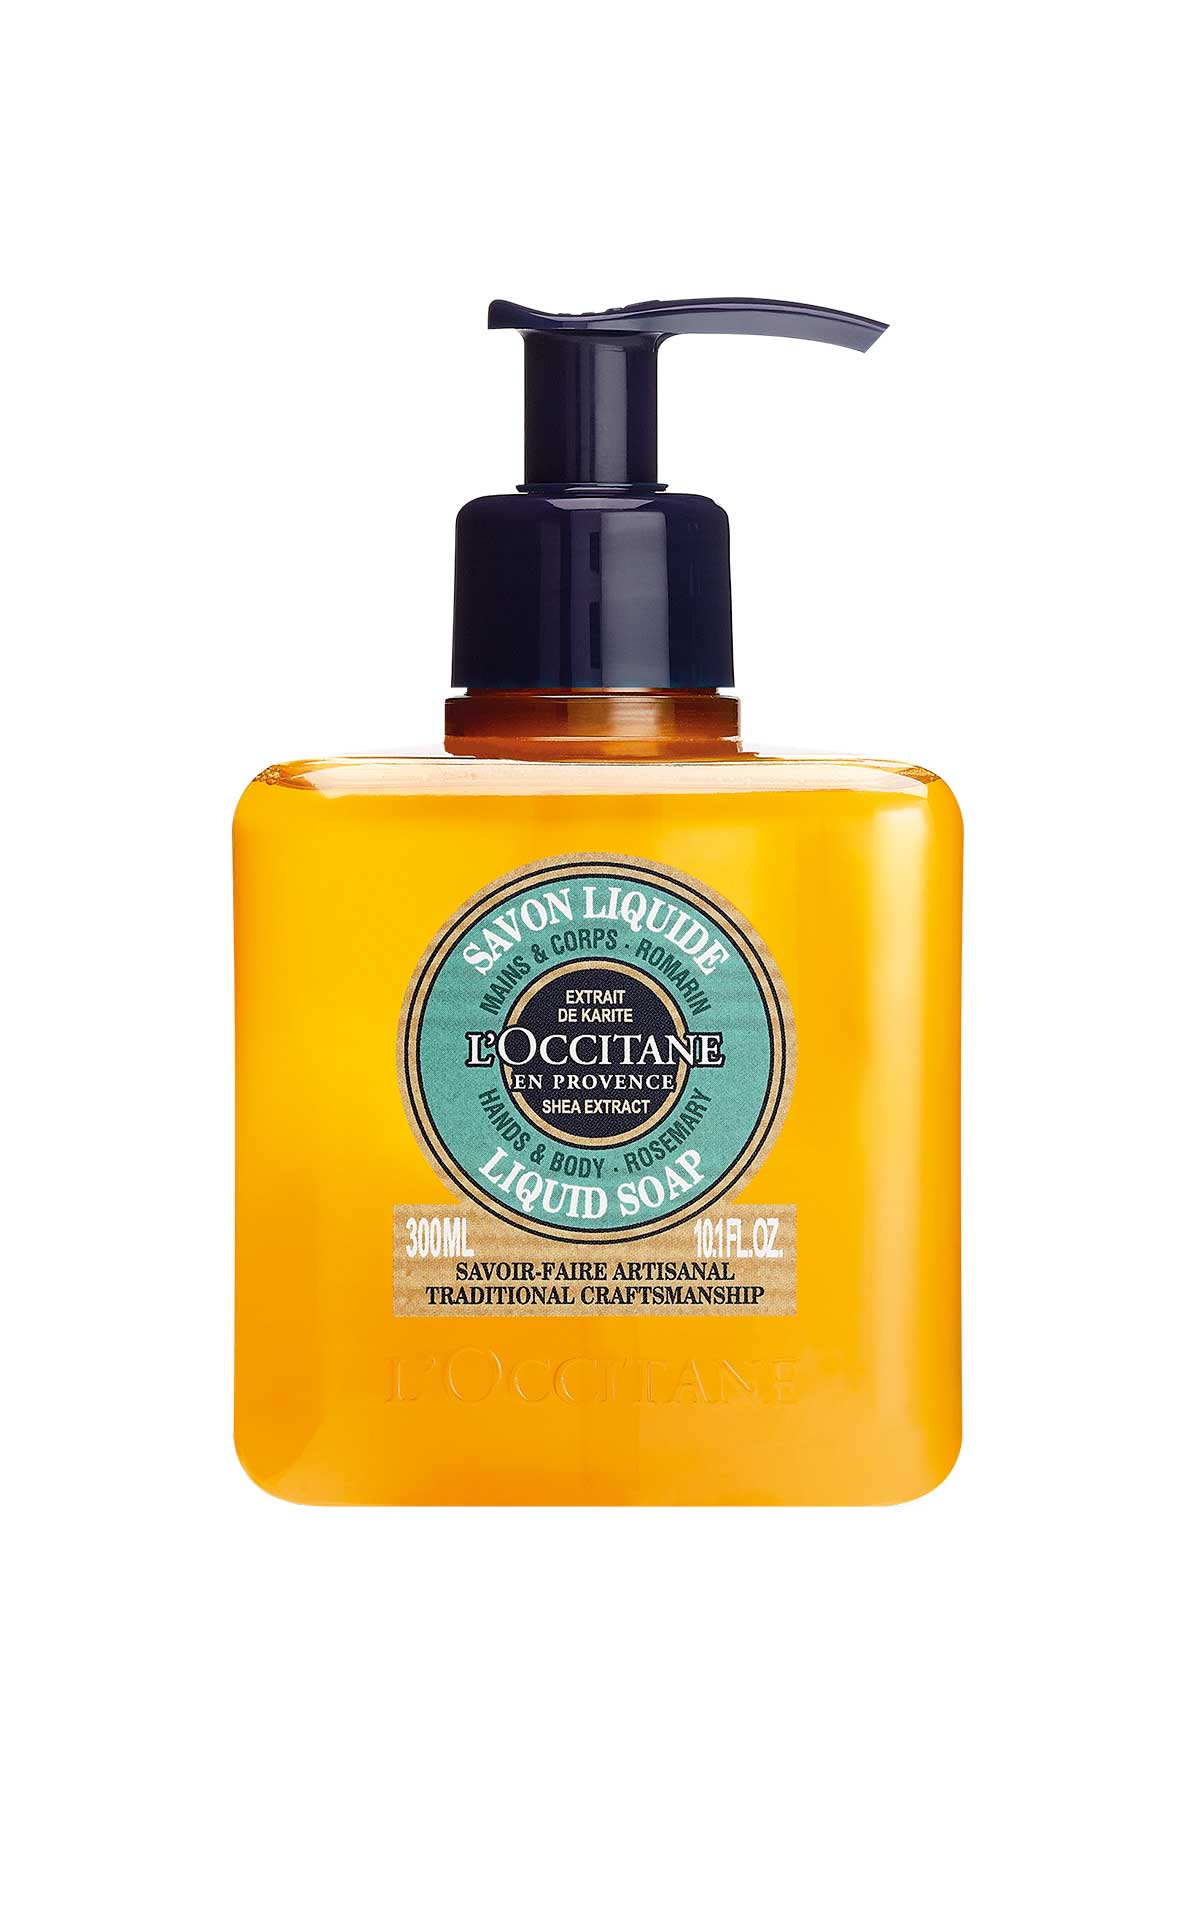 Liquid soap L'occitane en provence